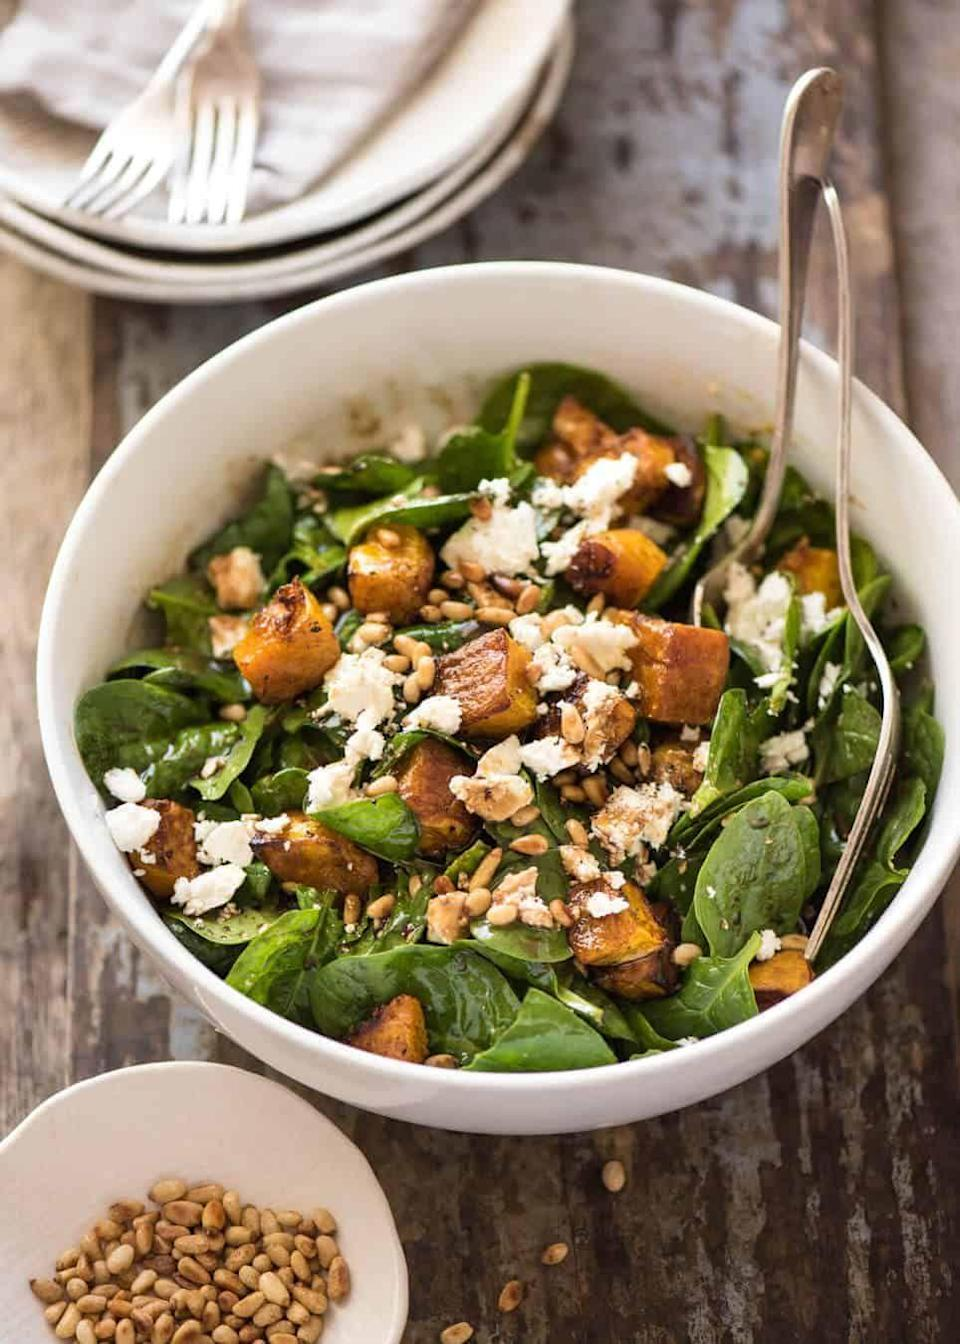 """<p>Who says salads need to be boring?! Load up your greens with tender roasted pumpkin, pine nuts, and tangy feta for a delicious fall lunch or hearty side. </p><p><strong>Get the recipe at <a href=""""https://www.recipetineats.com/roast-pumpkin-spinach-and-feta-salad/"""" rel=""""nofollow noopener"""" target=""""_blank"""" data-ylk=""""slk:Recipe Tin Eats"""" class=""""link rapid-noclick-resp"""">Recipe Tin Eats</a>. </strong></p><p><a class=""""link rapid-noclick-resp"""" href=""""https://go.redirectingat.com?id=74968X1596630&url=https%3A%2F%2Fwww.walmart.com%2Fsearch%2F%3Fquery%3Dpioneer%2Bwoman%2Bsalad%2Bbowl&sref=https%3A%2F%2Fwww.thepioneerwoman.com%2Ffood-cooking%2Fmeals-menus%2Fg37022645%2Fhealthy-pumpkin-recipes%2F"""" rel=""""nofollow noopener"""" target=""""_blank"""" data-ylk=""""slk:SHOP SALAD BOWLS"""">SHOP SALAD BOWLS</a></p>"""